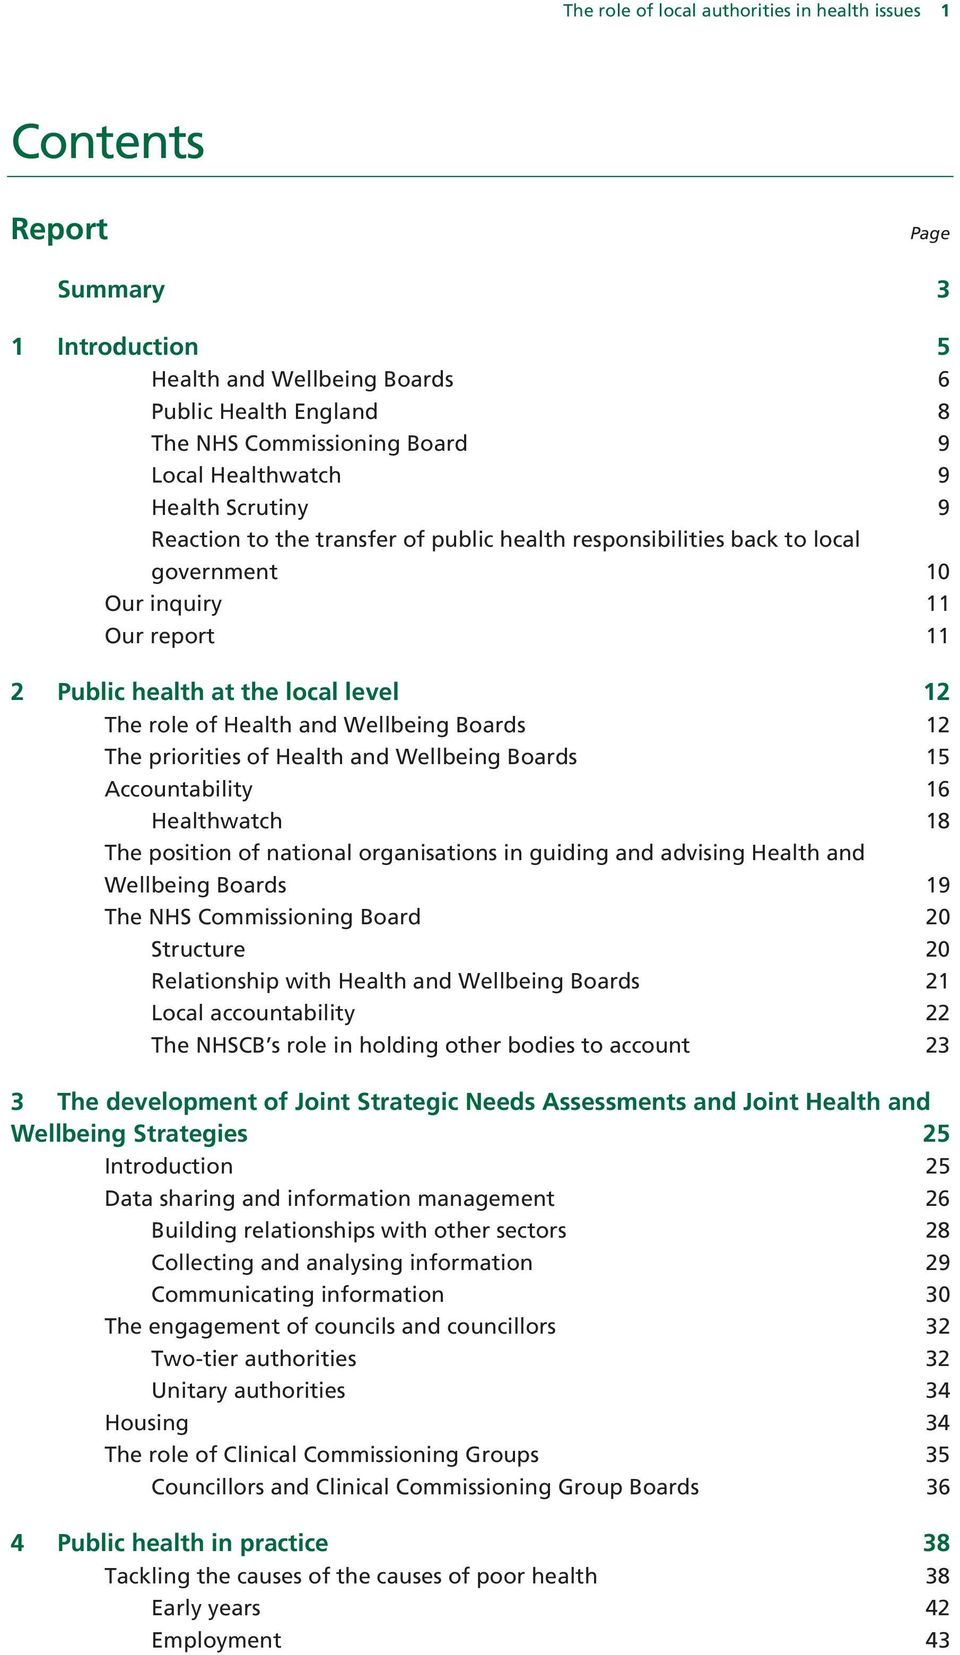 Wellbeing Boards 12 The priorities of Health and Wellbeing Boards 15 Accountability 16 Healthwatch 18 The position of national organisations in guiding and advising Health and Wellbeing Boards 19 The